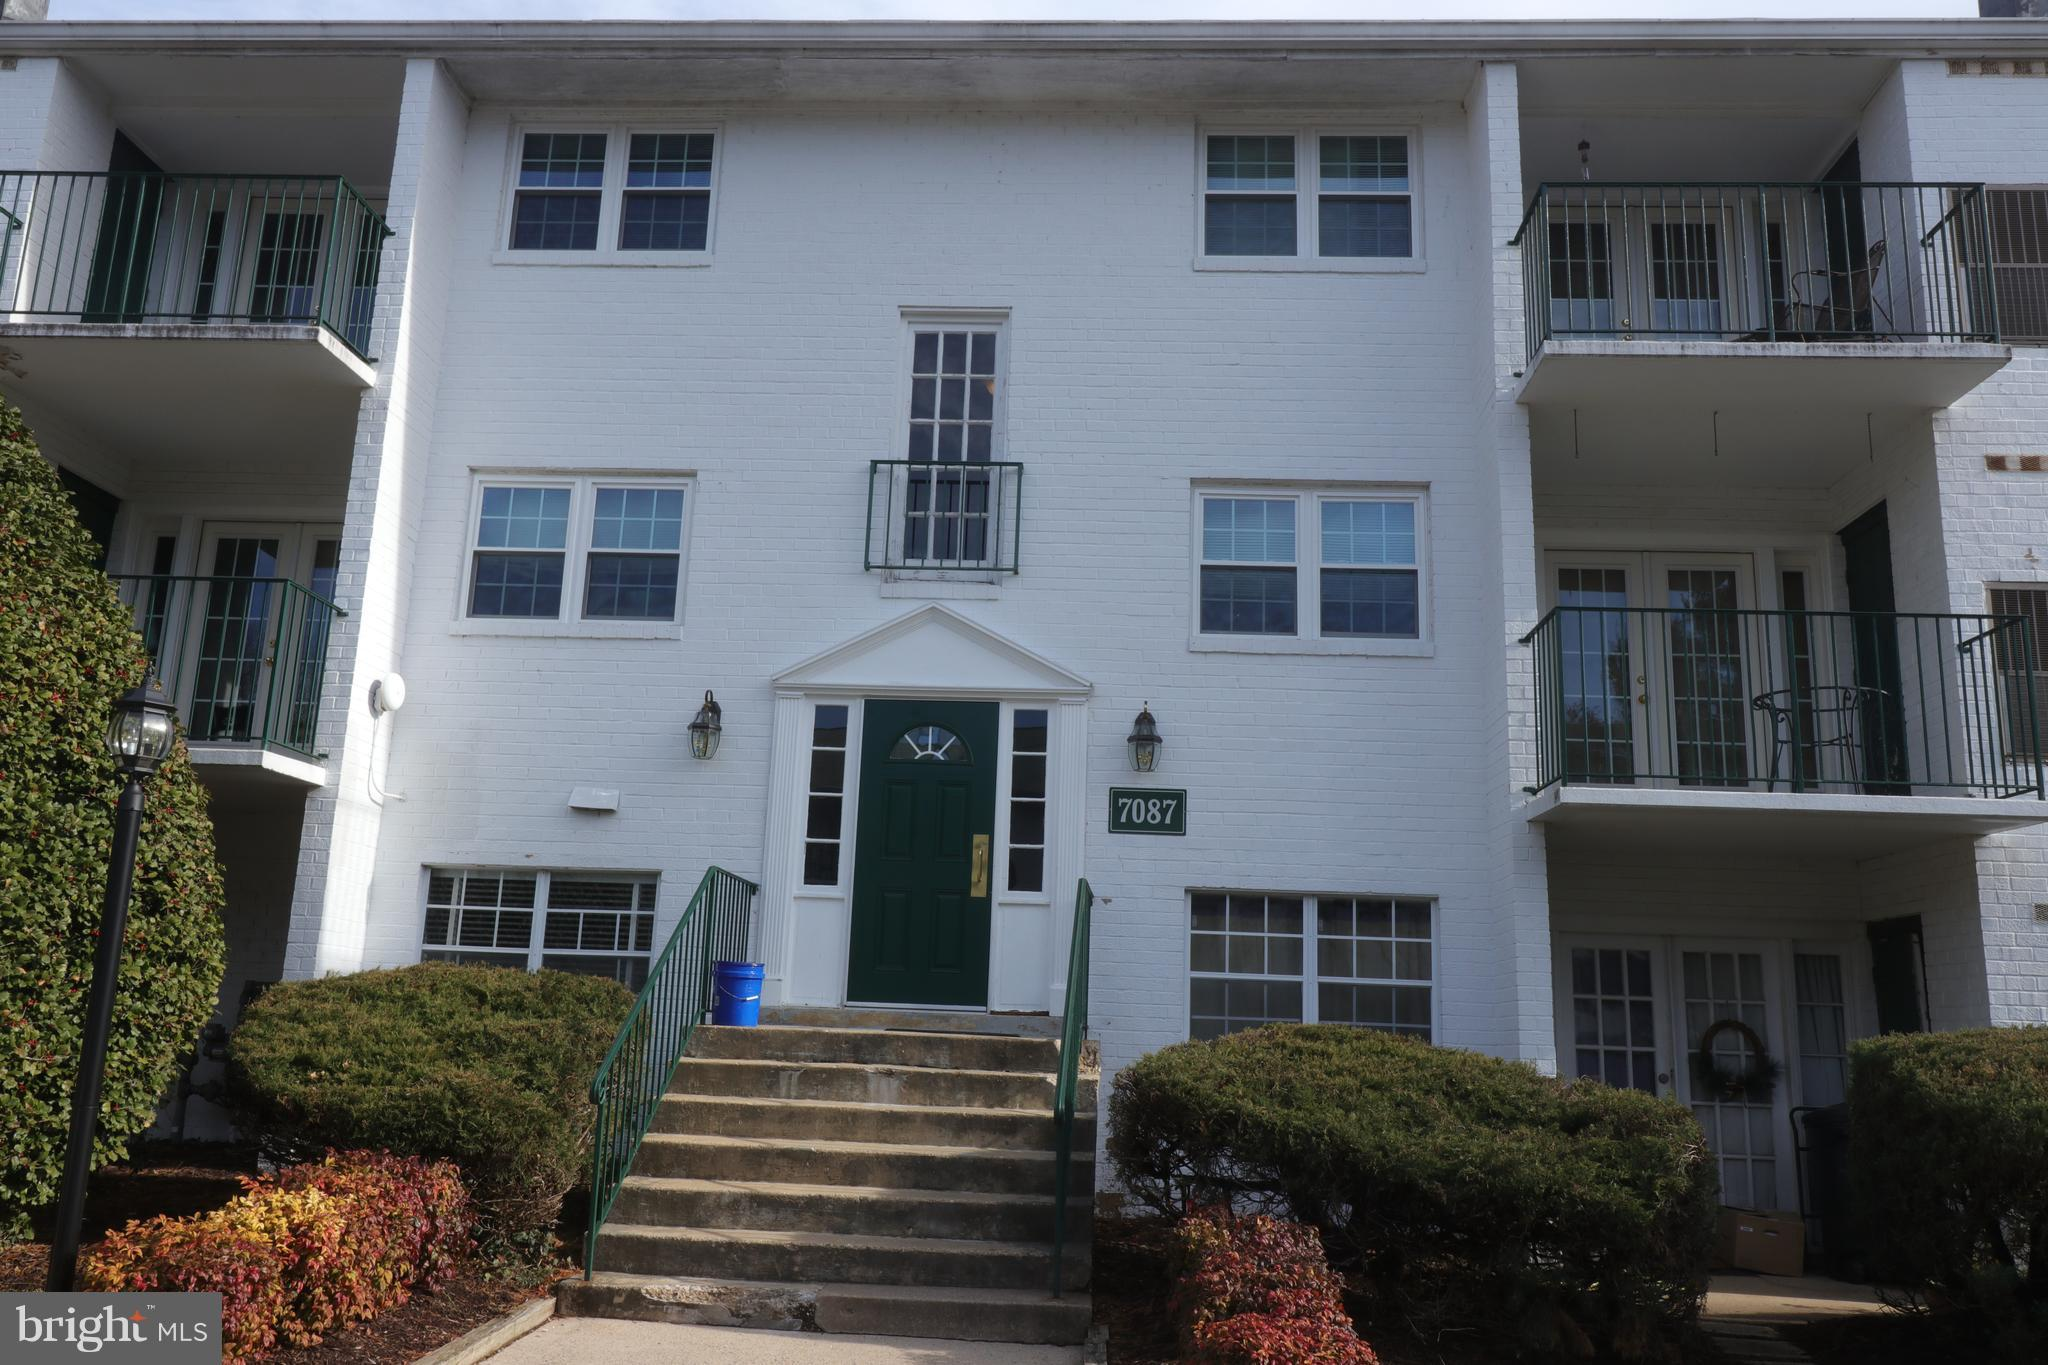 Very nice two bedroom one bath condo located in Springfield Spacious Master bedroom with walk in closet. Freshly painted and new carpeting. Minutes from Springfield Town Center and Franconia Metro. A MUST SEE!!!